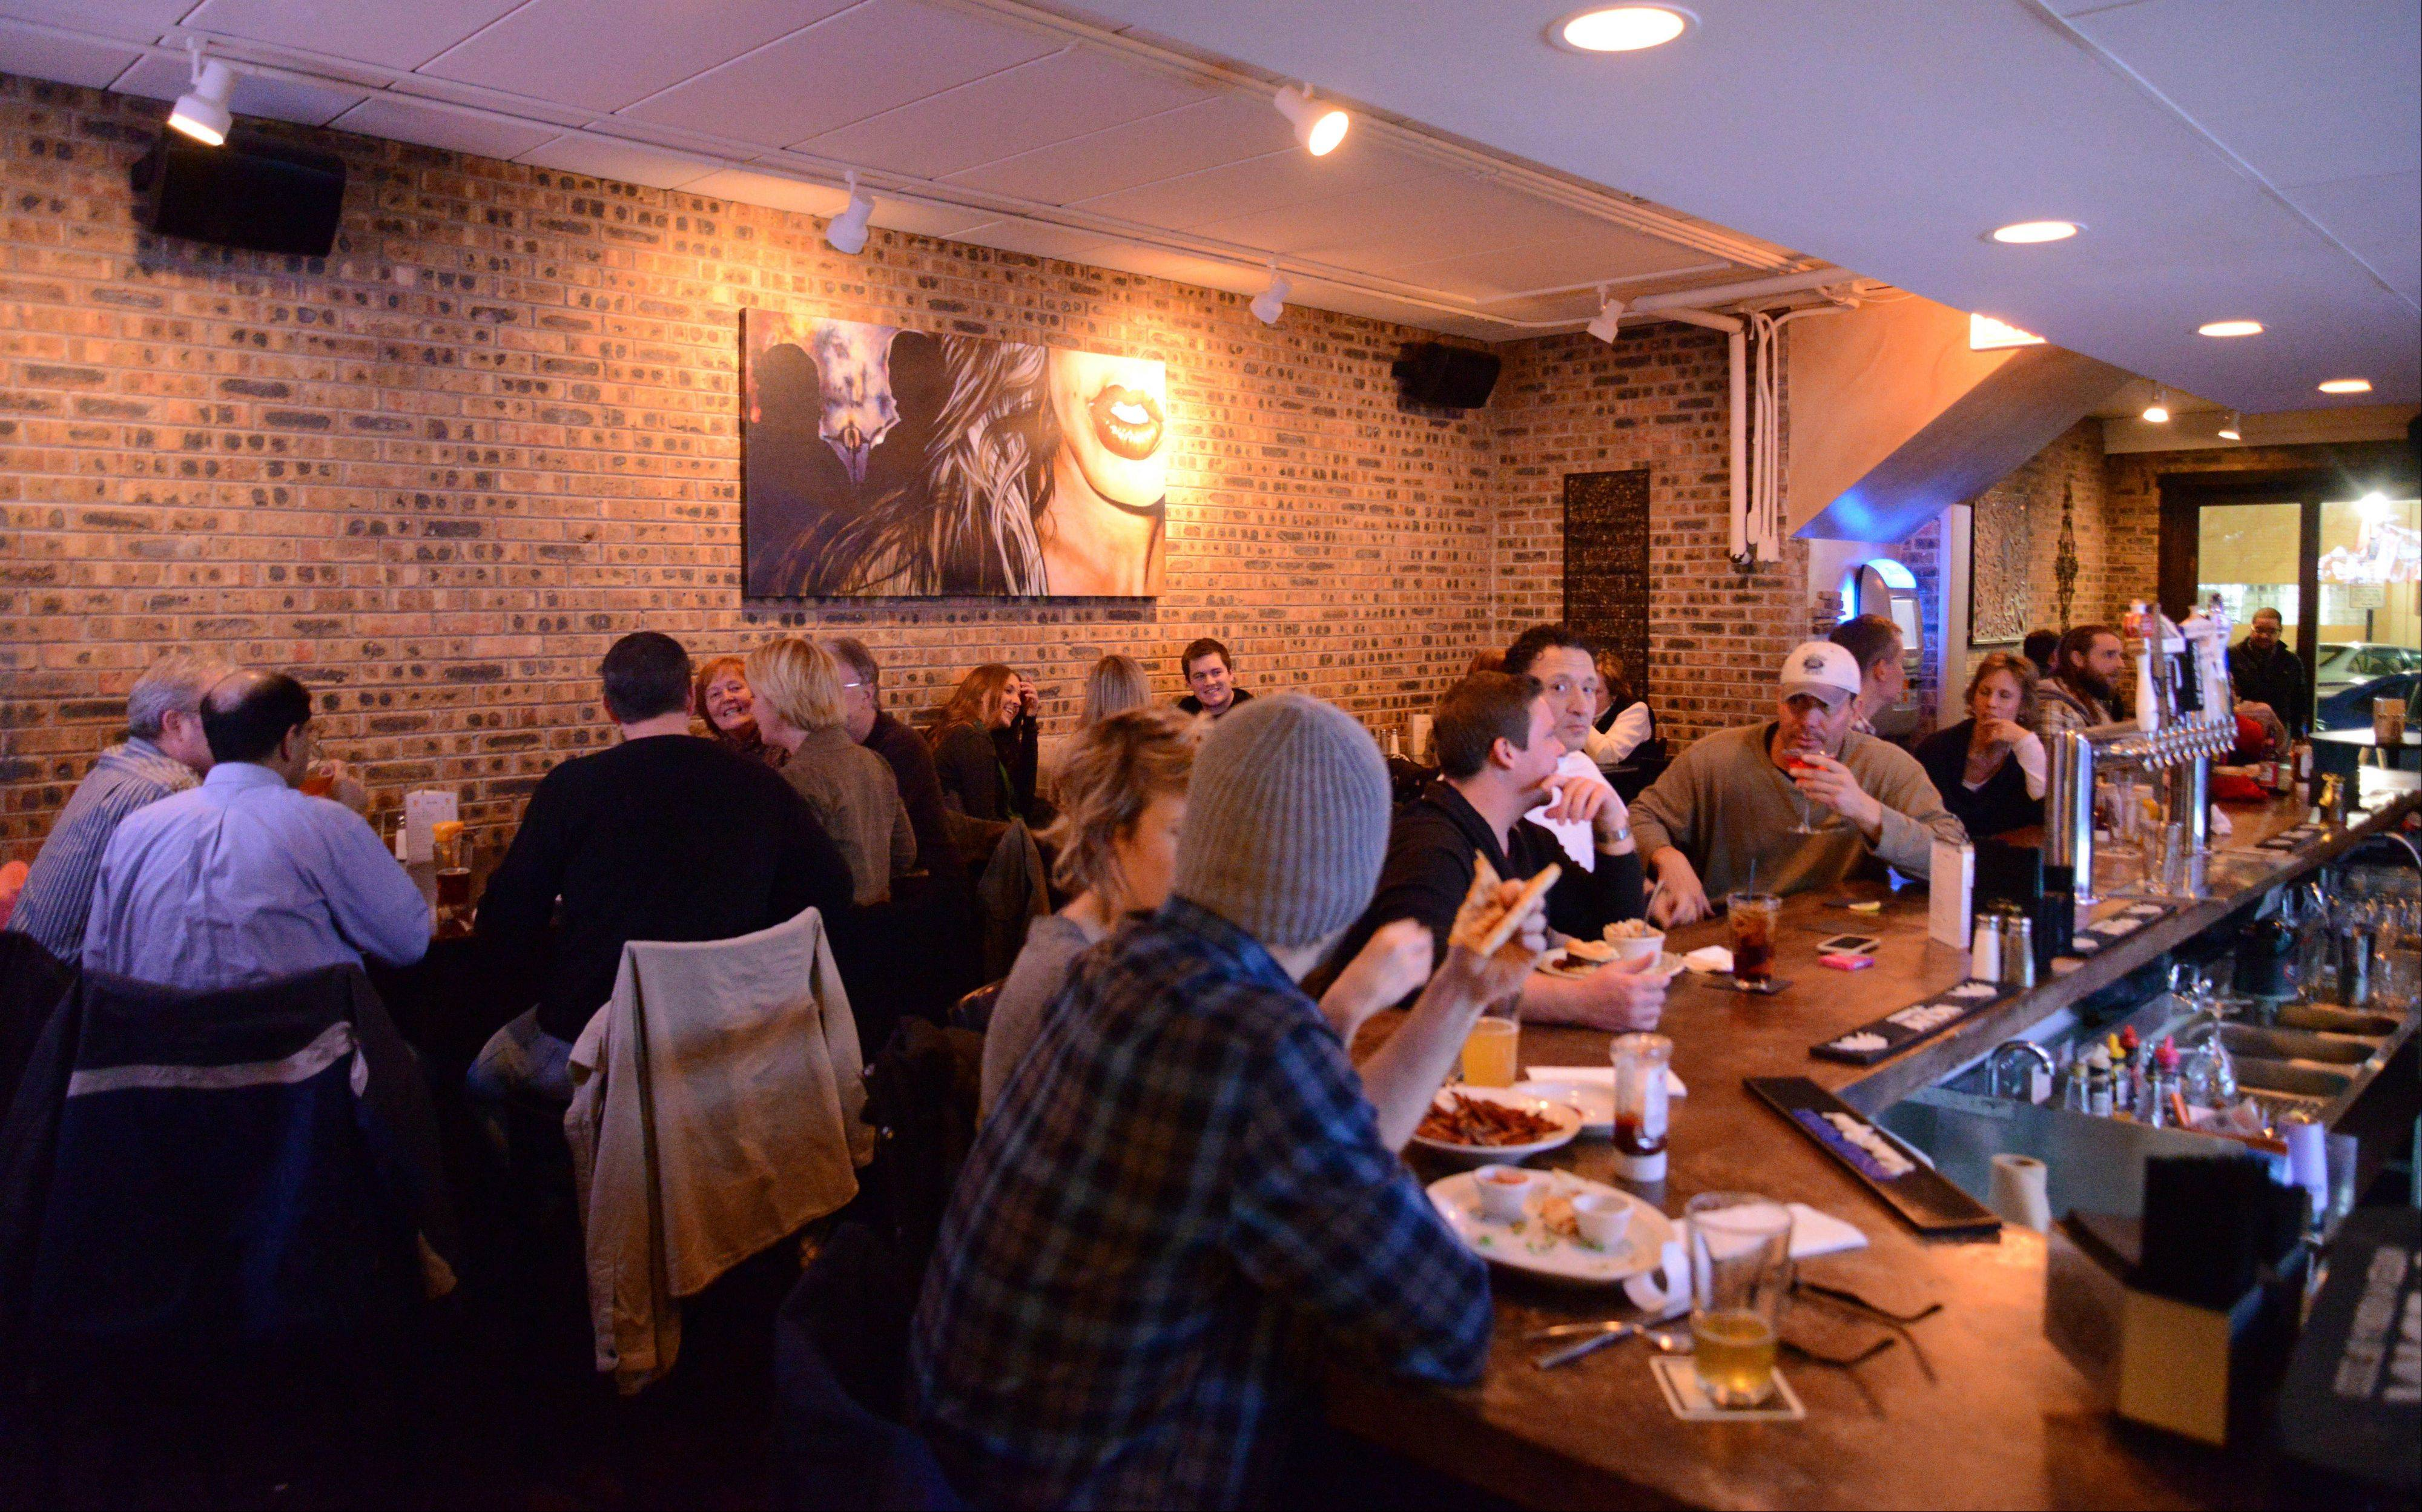 Jackson Ave. Pub serves up craft beer, burgers and more.